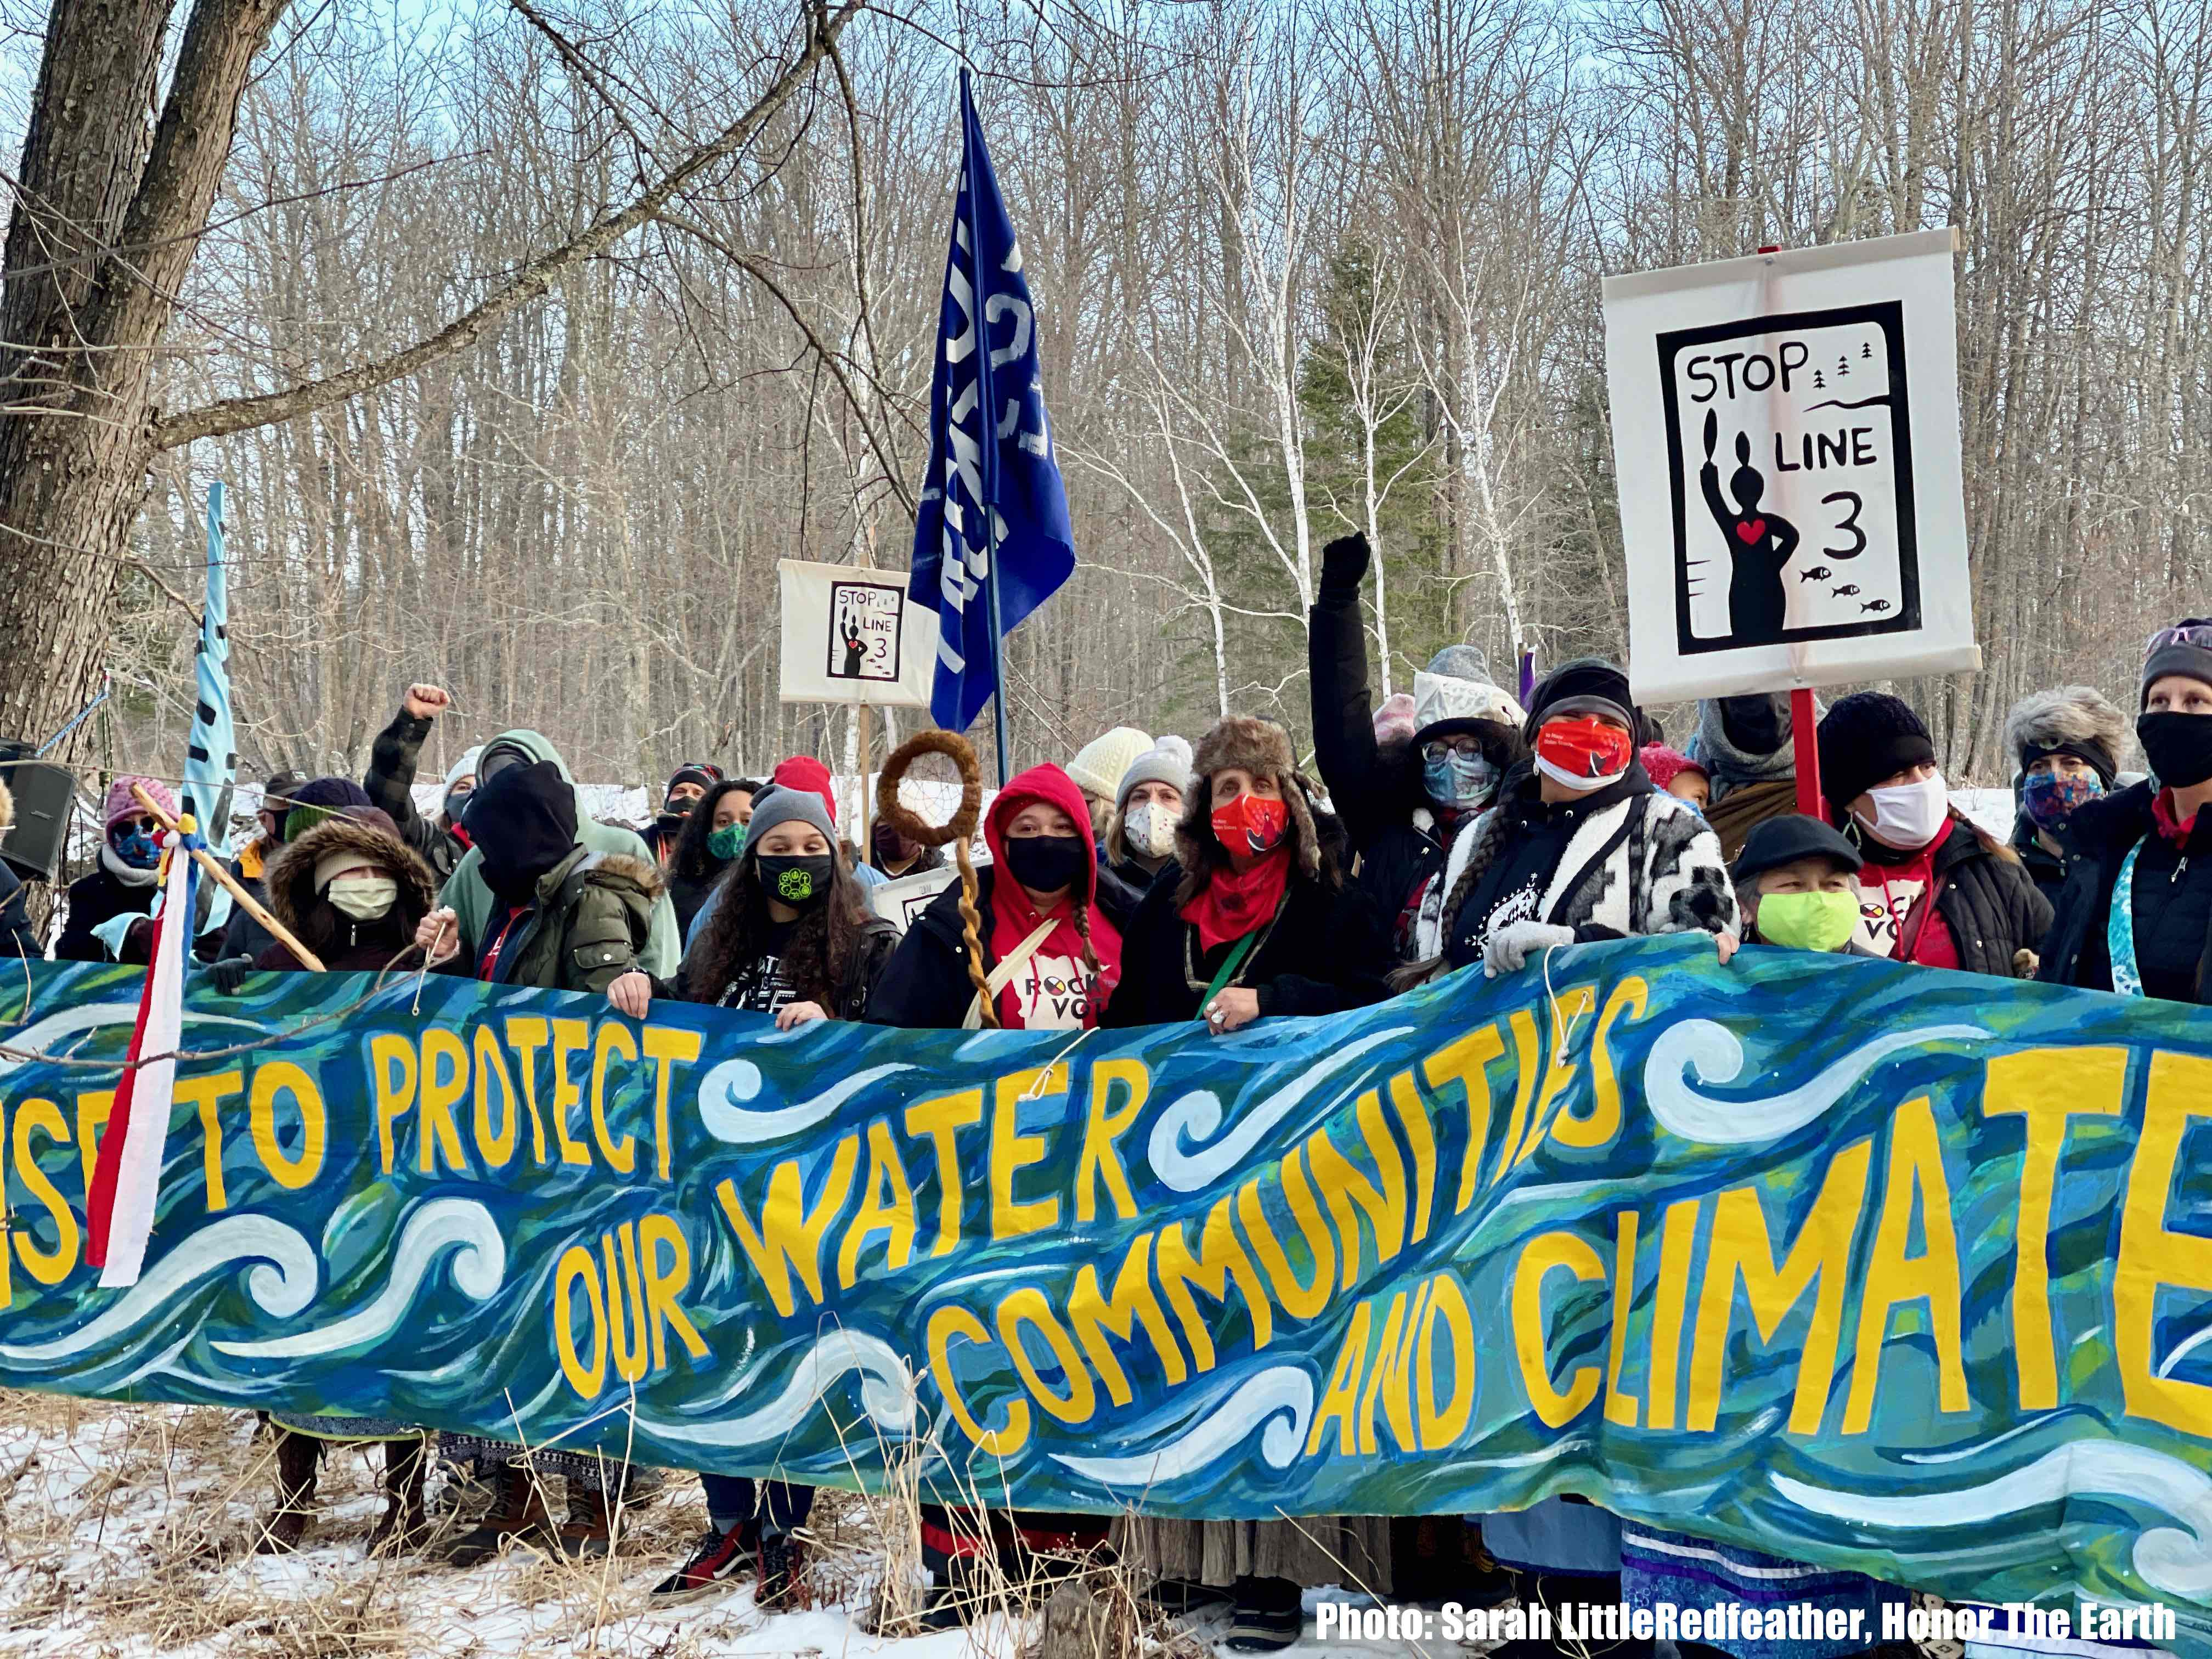 Over 350 Groups Urge President Biden to Stop the Line 3 Pipeline and Protect Indigenous Rights, Climate